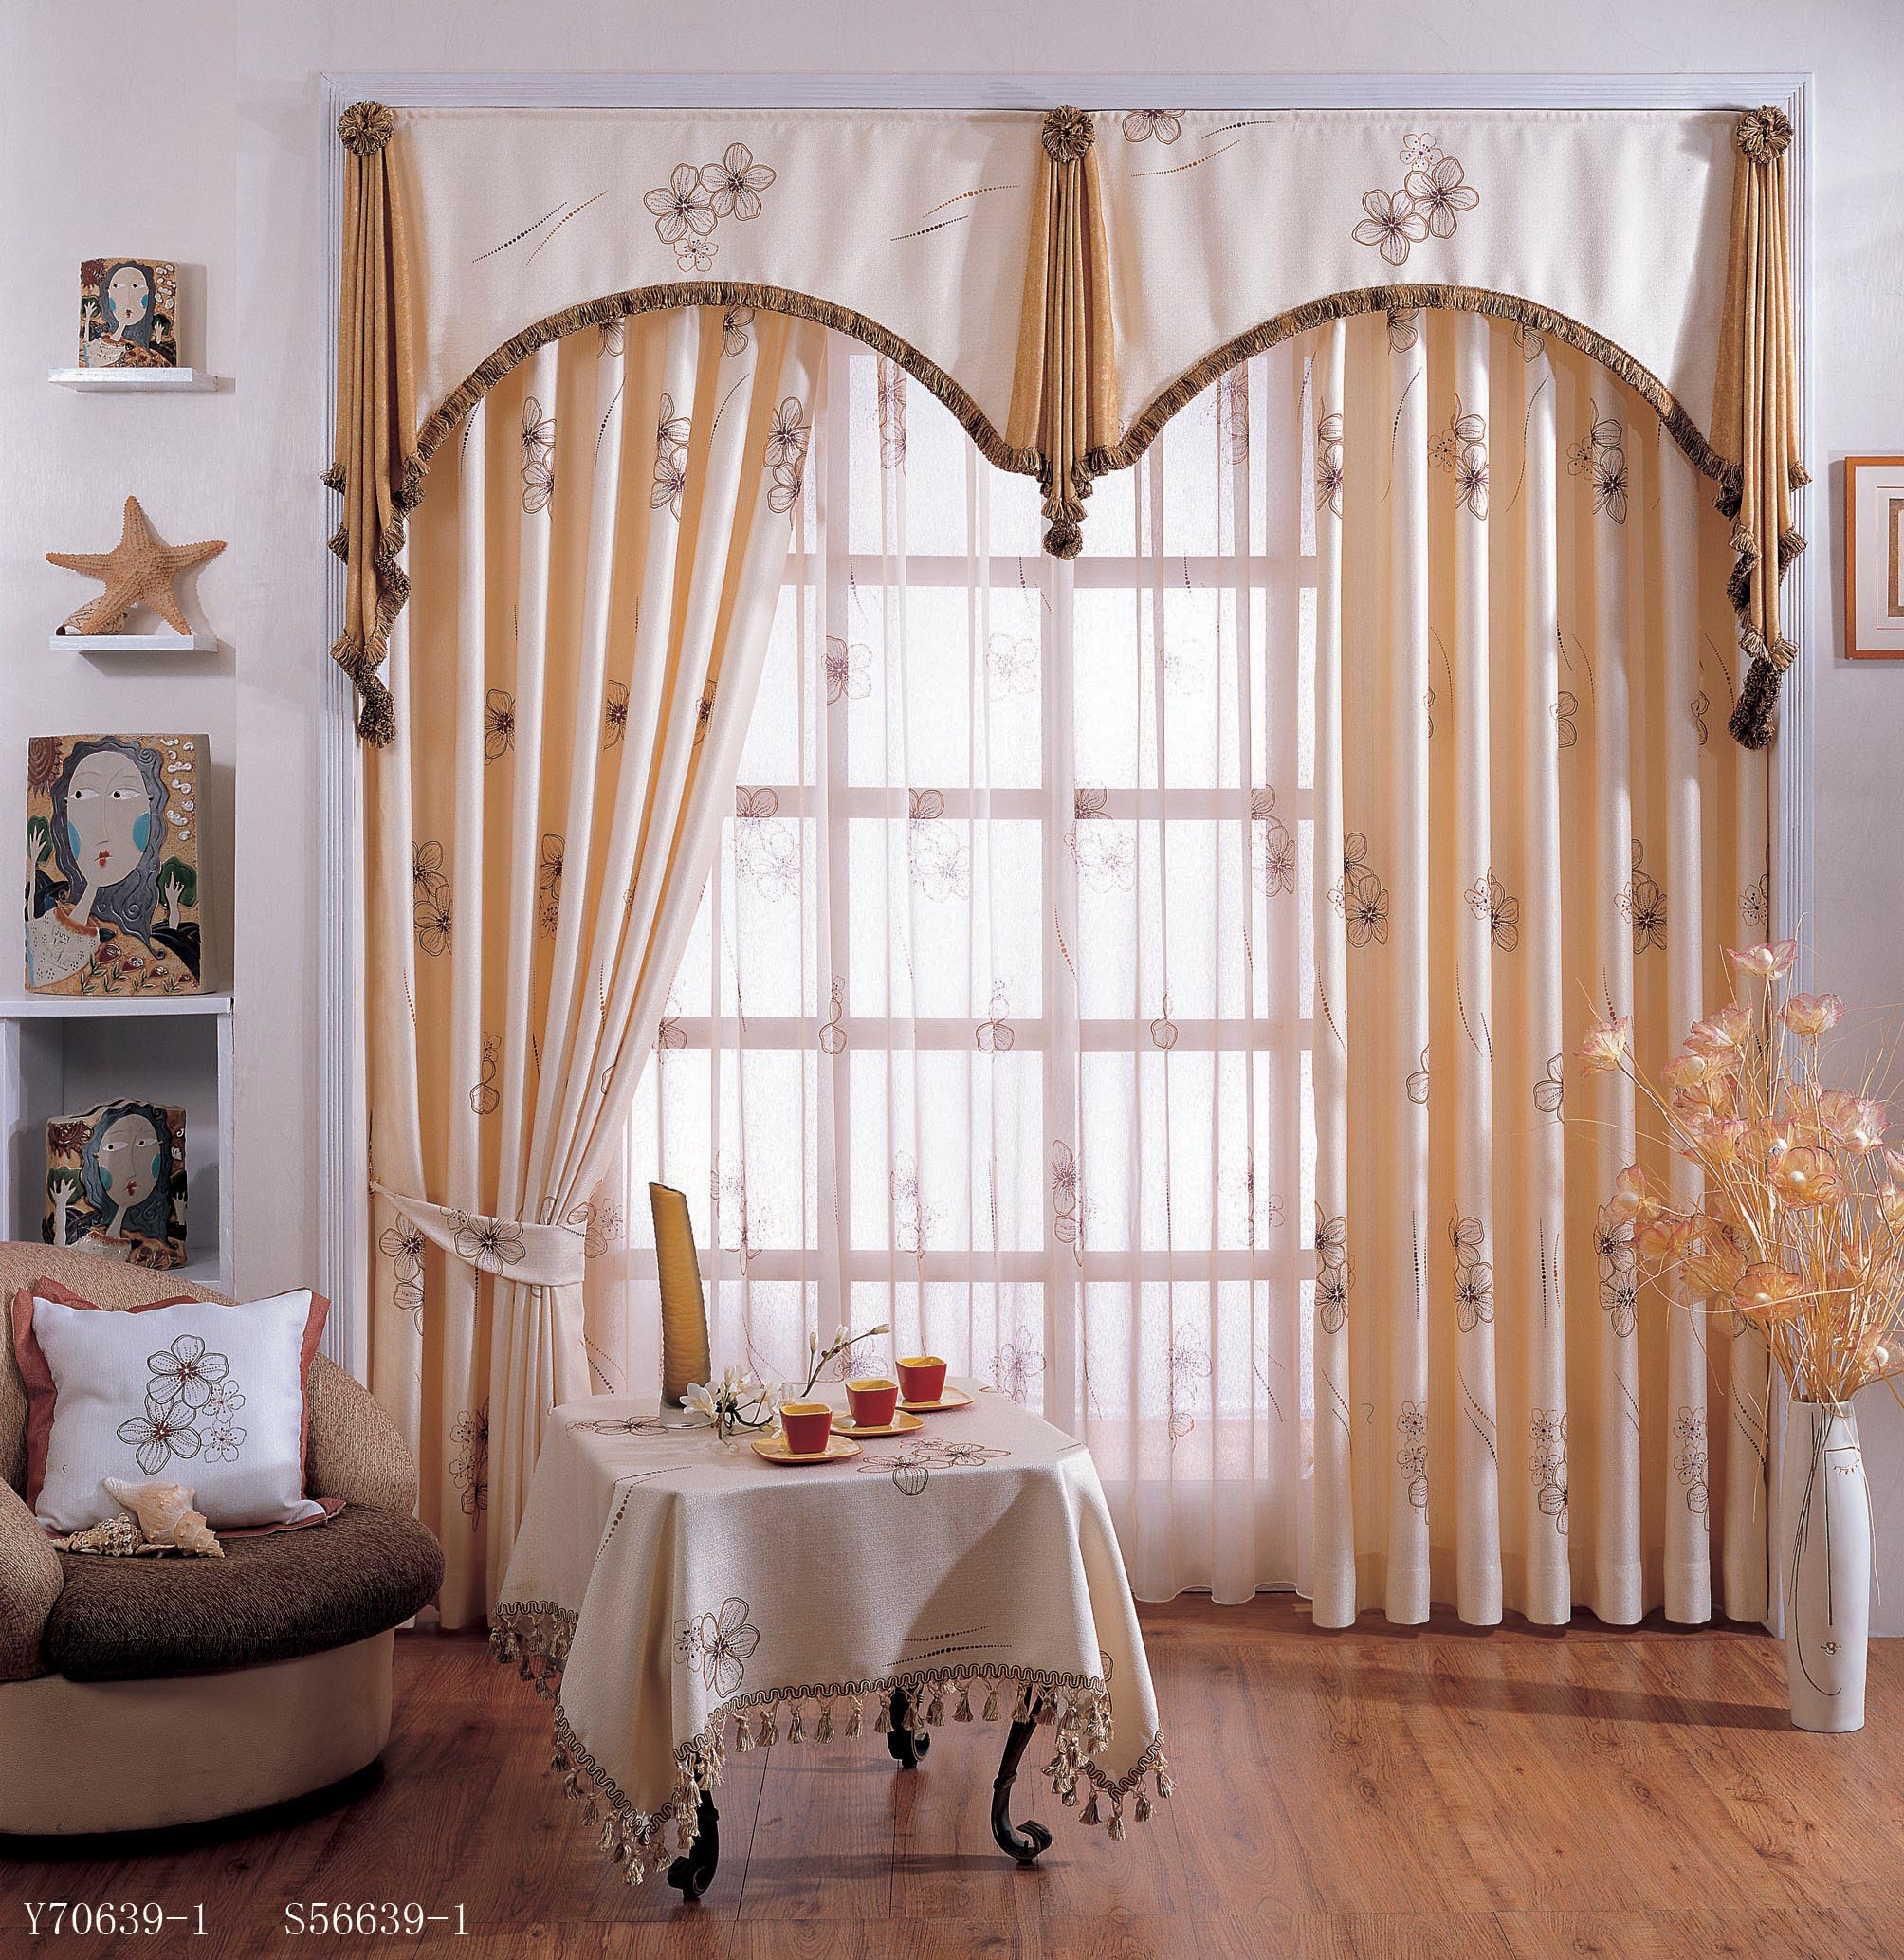 curtain valances for living room window treatments design ideas. Black Bedroom Furniture Sets. Home Design Ideas